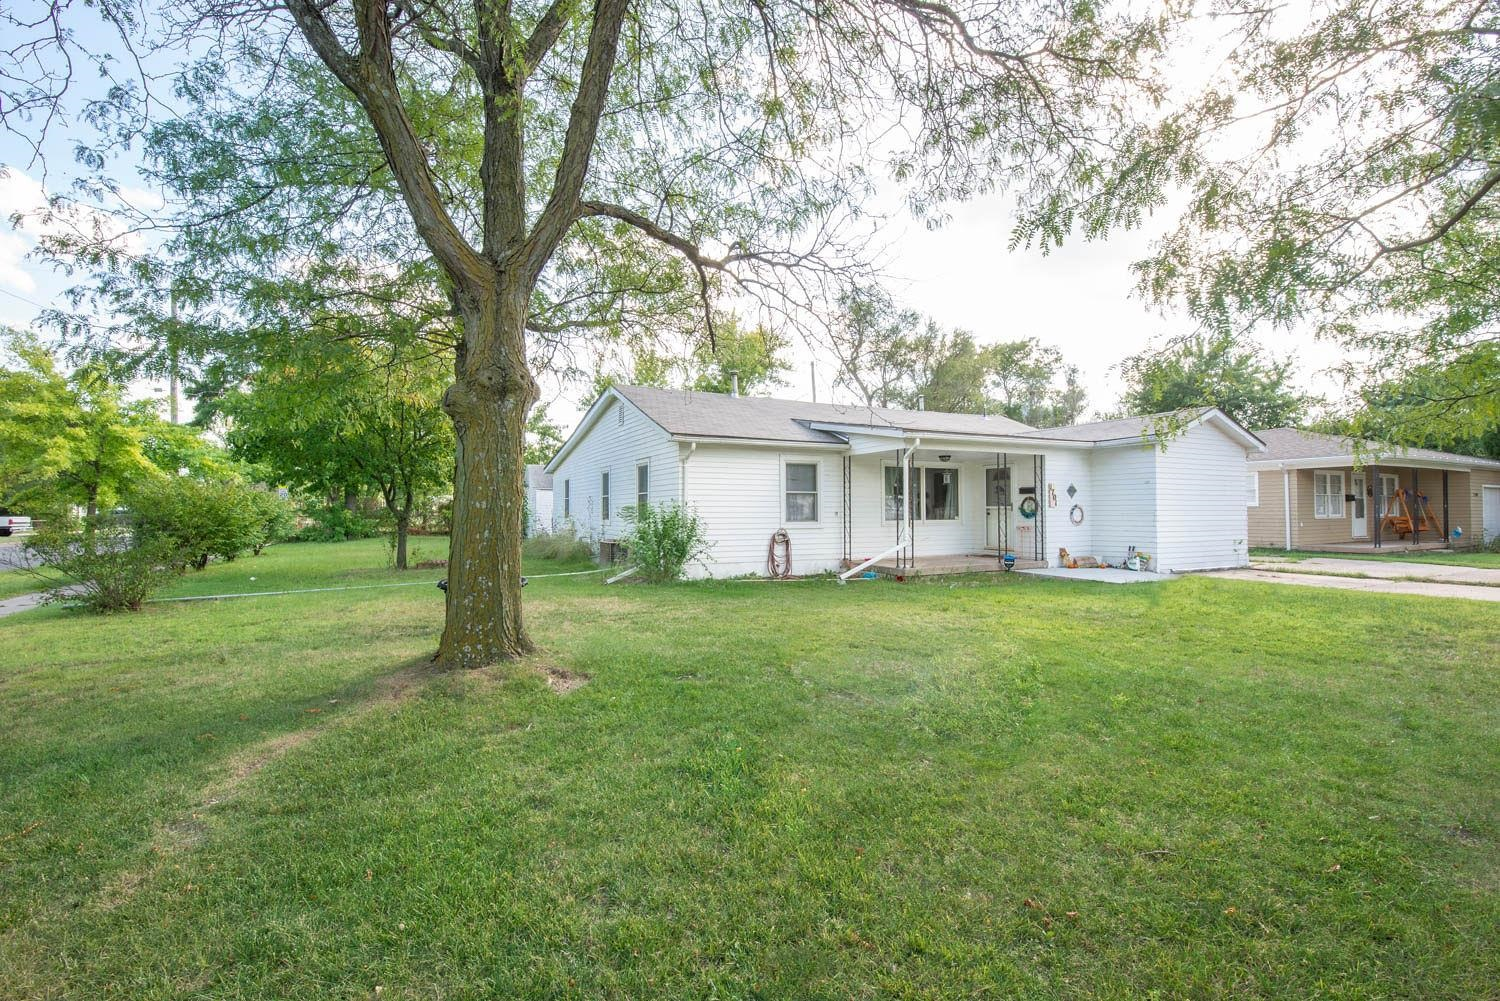 4 BEDS, 3 BATHS, & NEARLY 2,000 SQ FT IN AN UPDATED RANCH HOME!  THIS HOME SHOWCASES TONS OF SPACE &